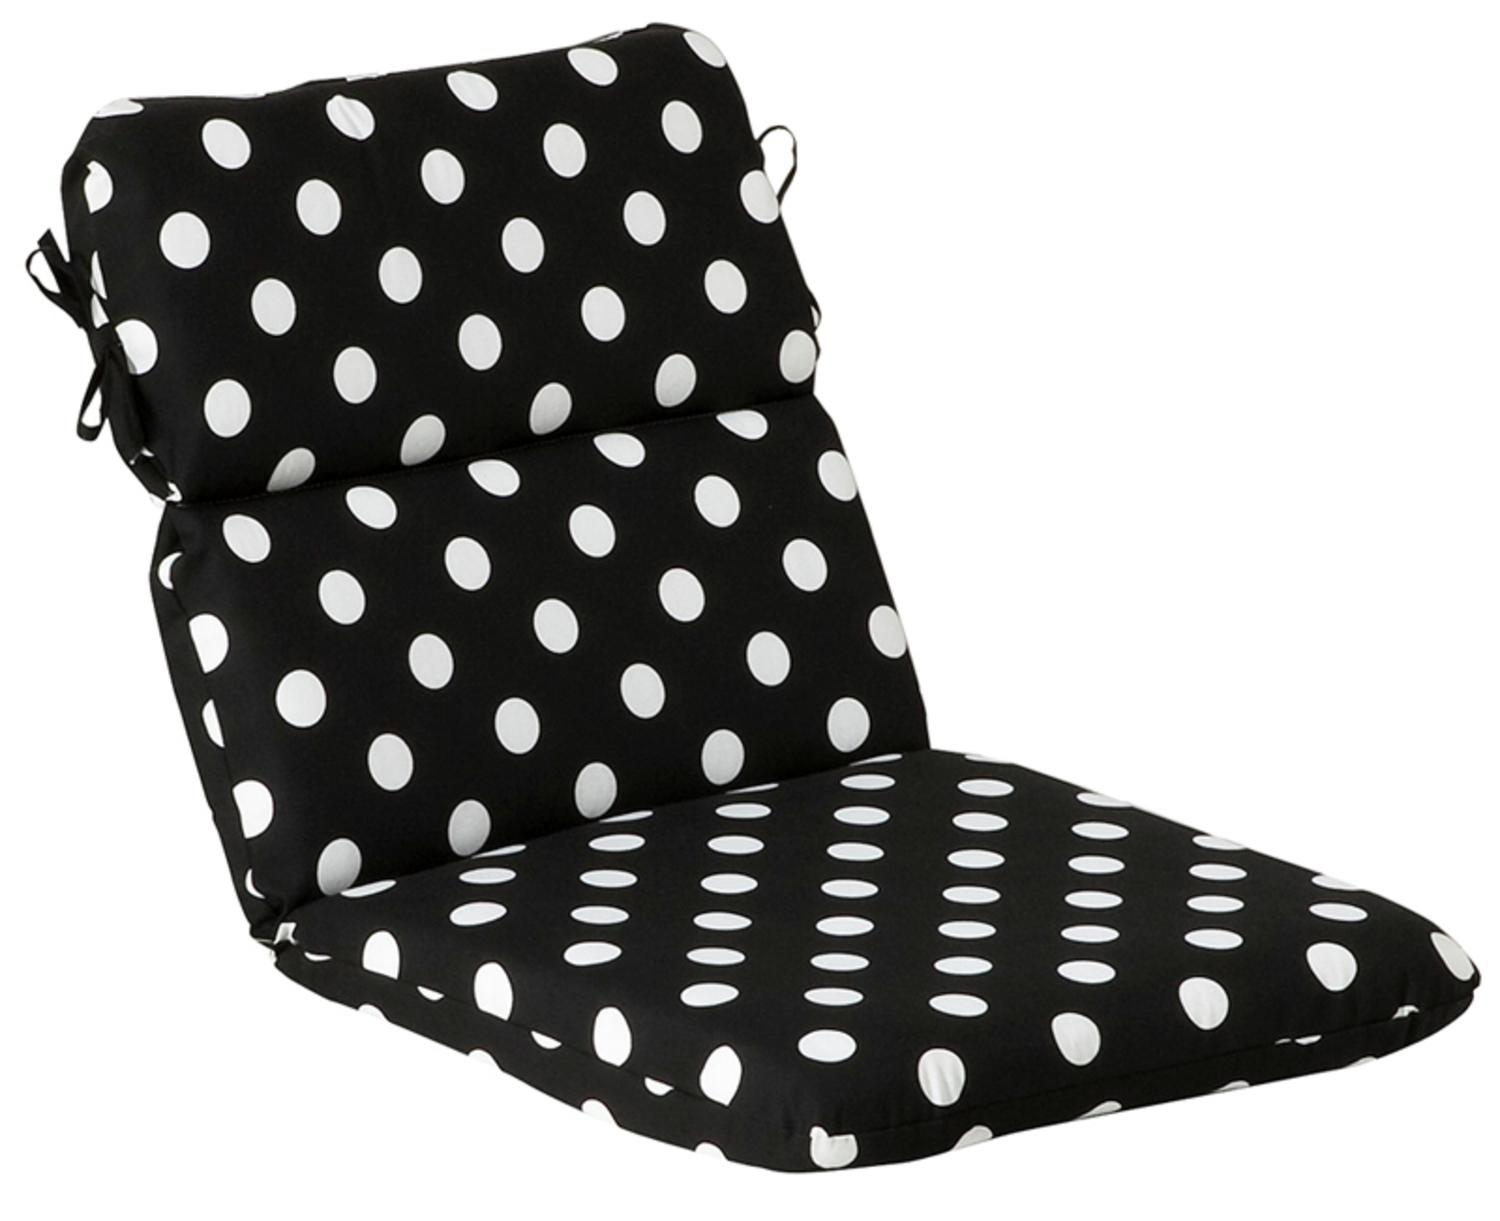 Outdoor Patio Furniture High Back Chair Cushion   Black U0026 White Polka Dot    Walmart.com